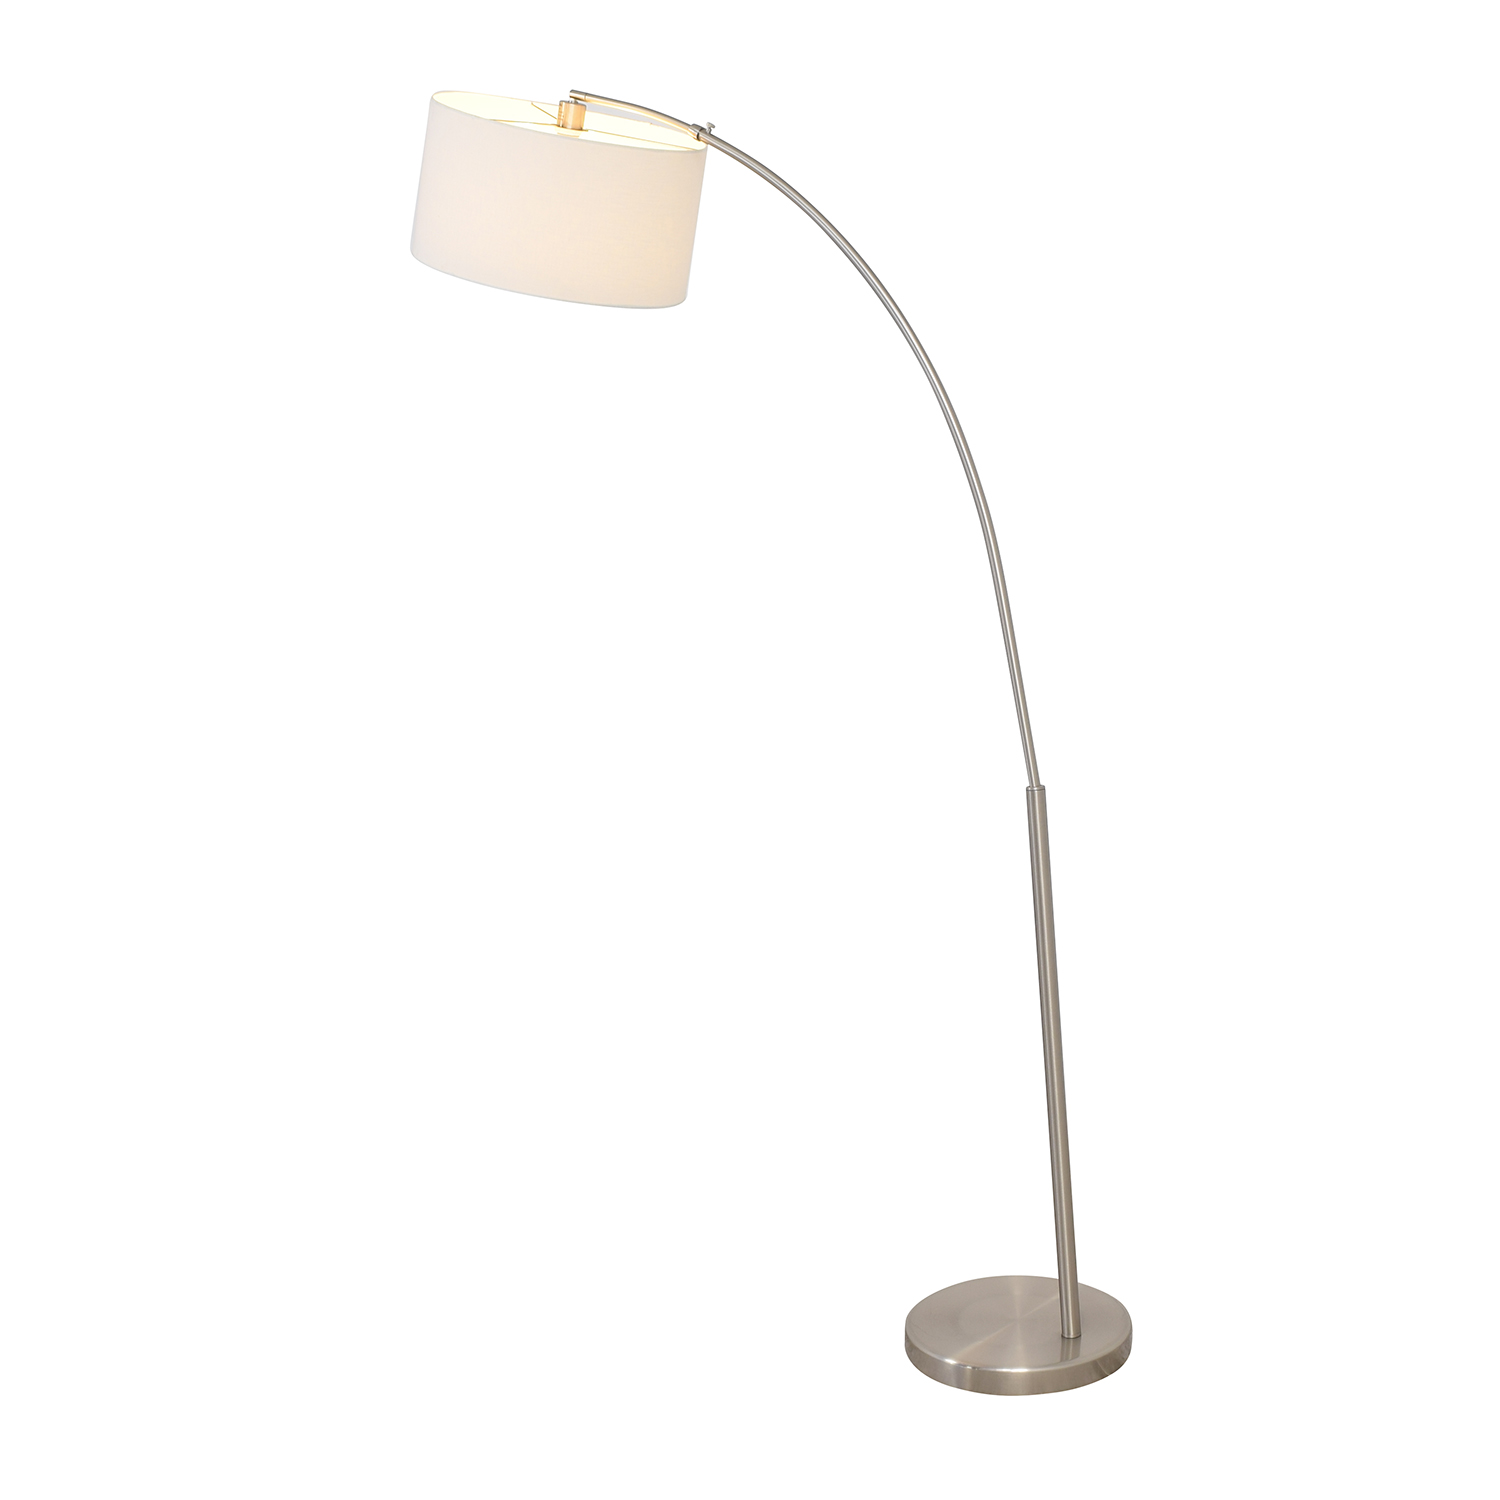 CB2 CB2 Big Dipper Arc Floor Lamp Decor